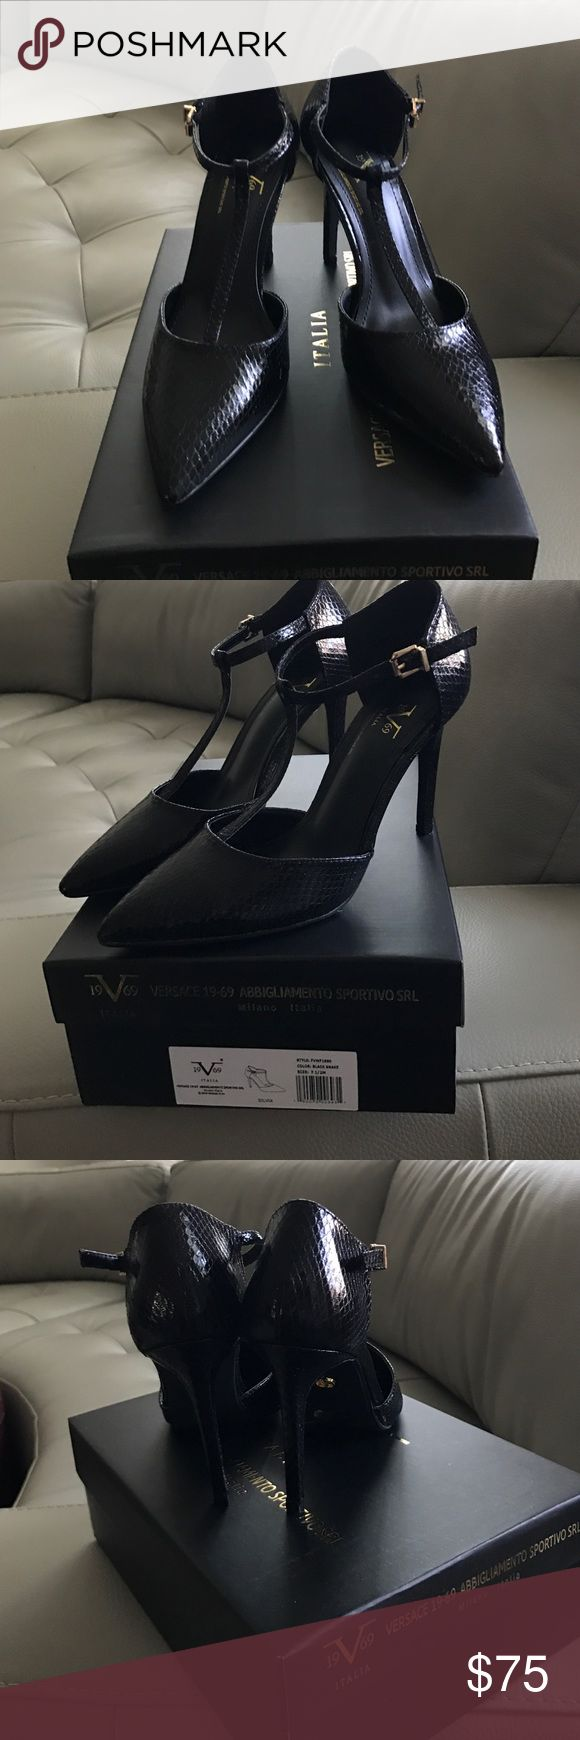 Versace brand new shoes 👠 Versace brand new shoes with tags & box🌺🌸🌼🌷🌹🍁🌎🎃🌼 Versace Shoes Heels